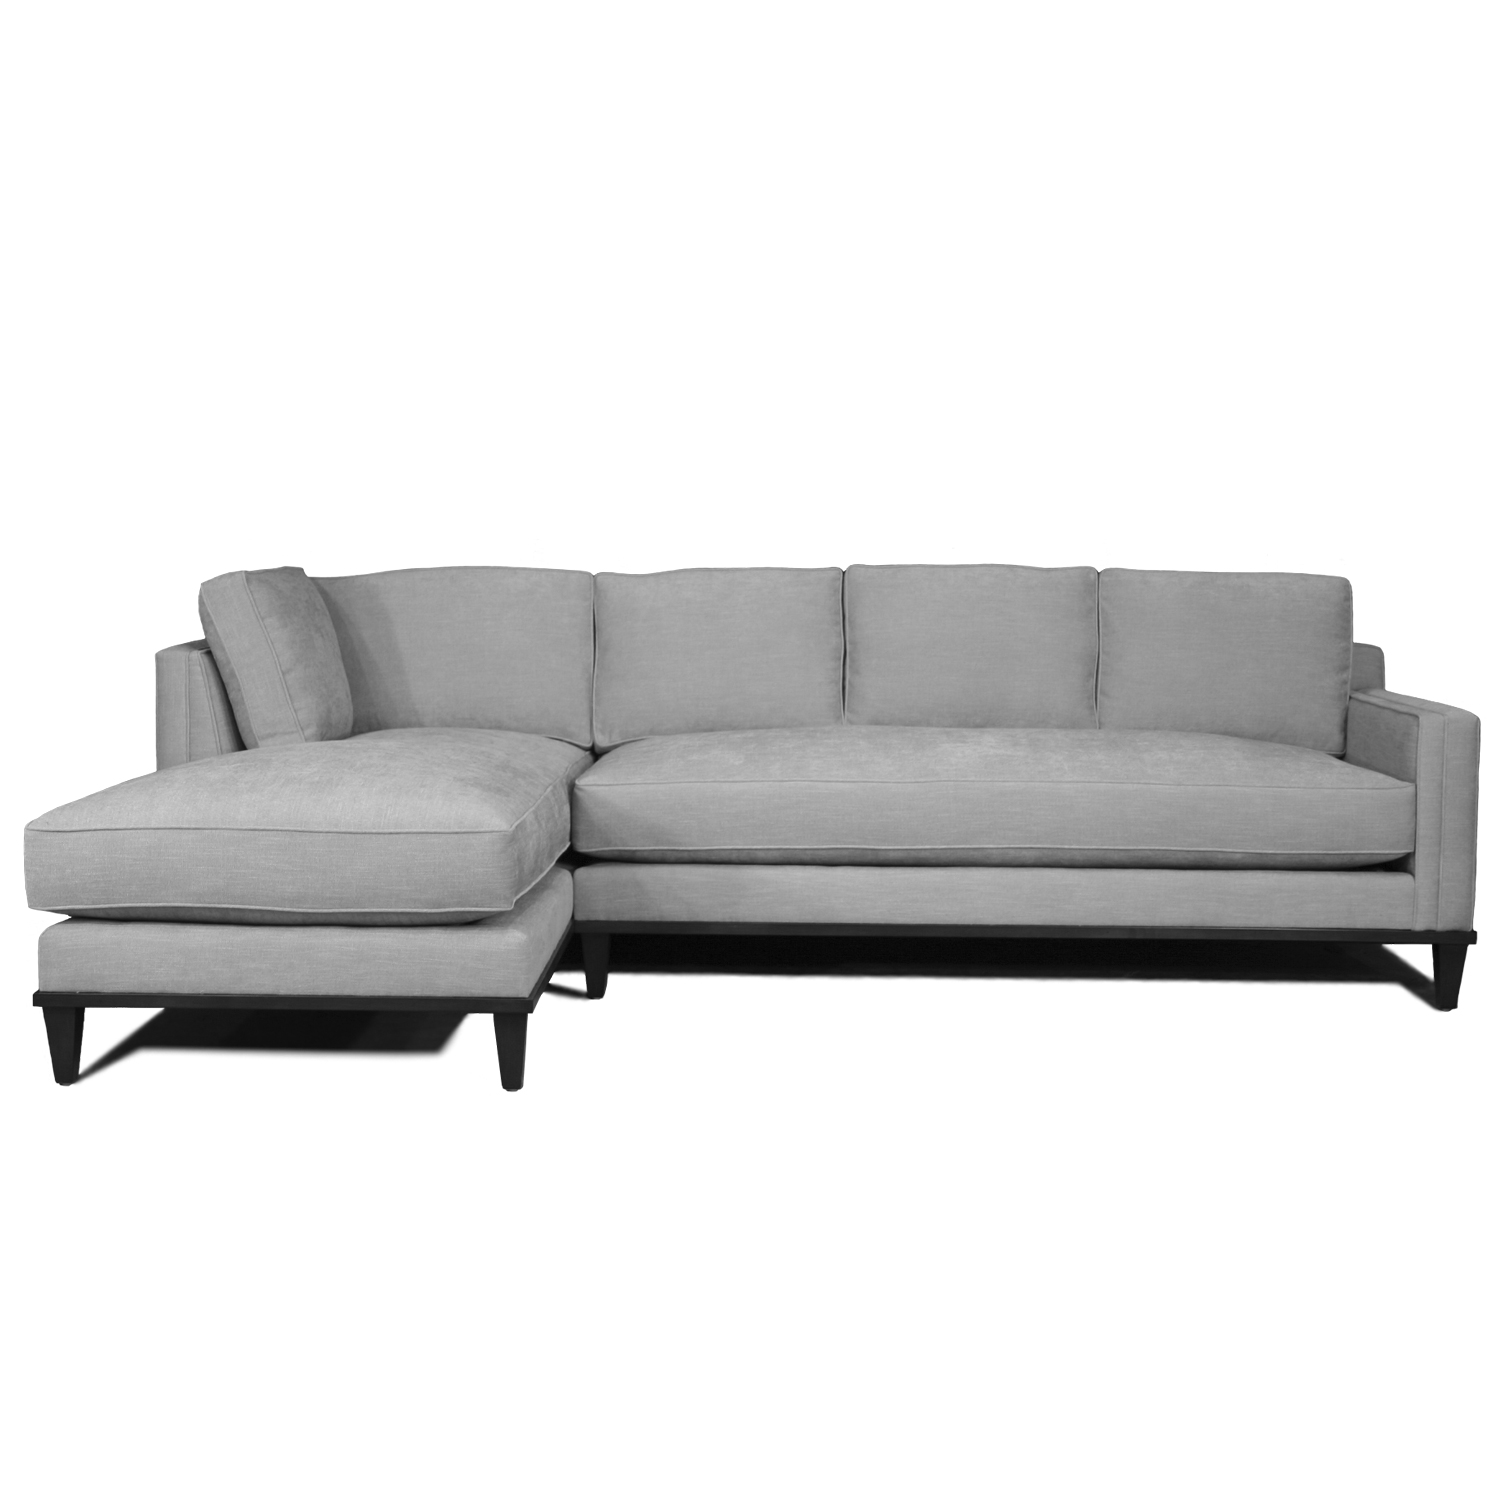 Sofa X Long Metropolitan 2 Piece Sofa Chaise Sectional Stewart Furniture